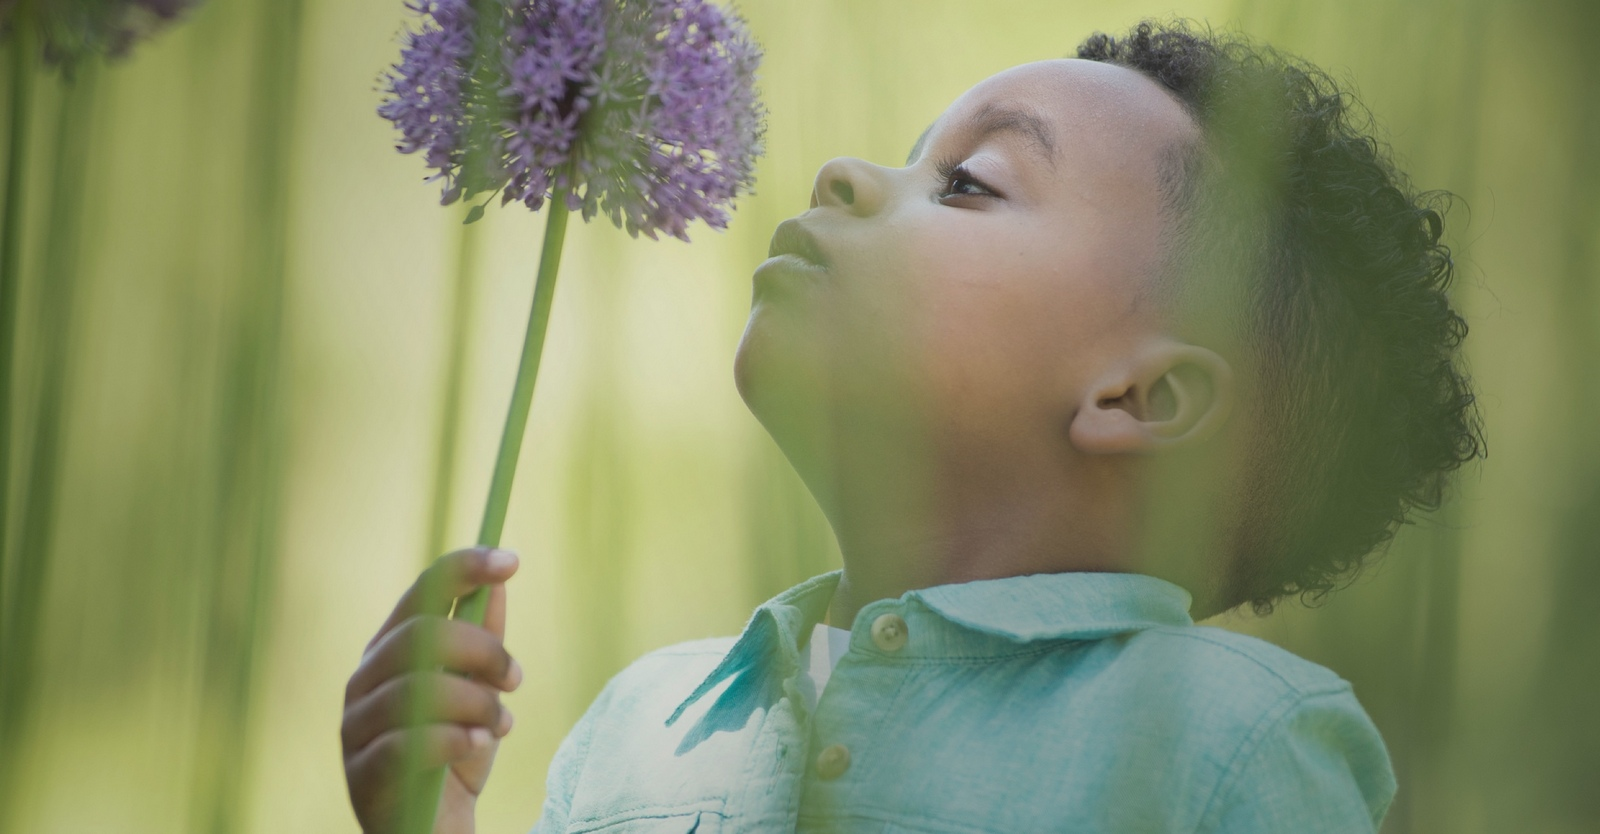 young boy smelling a flower in the park